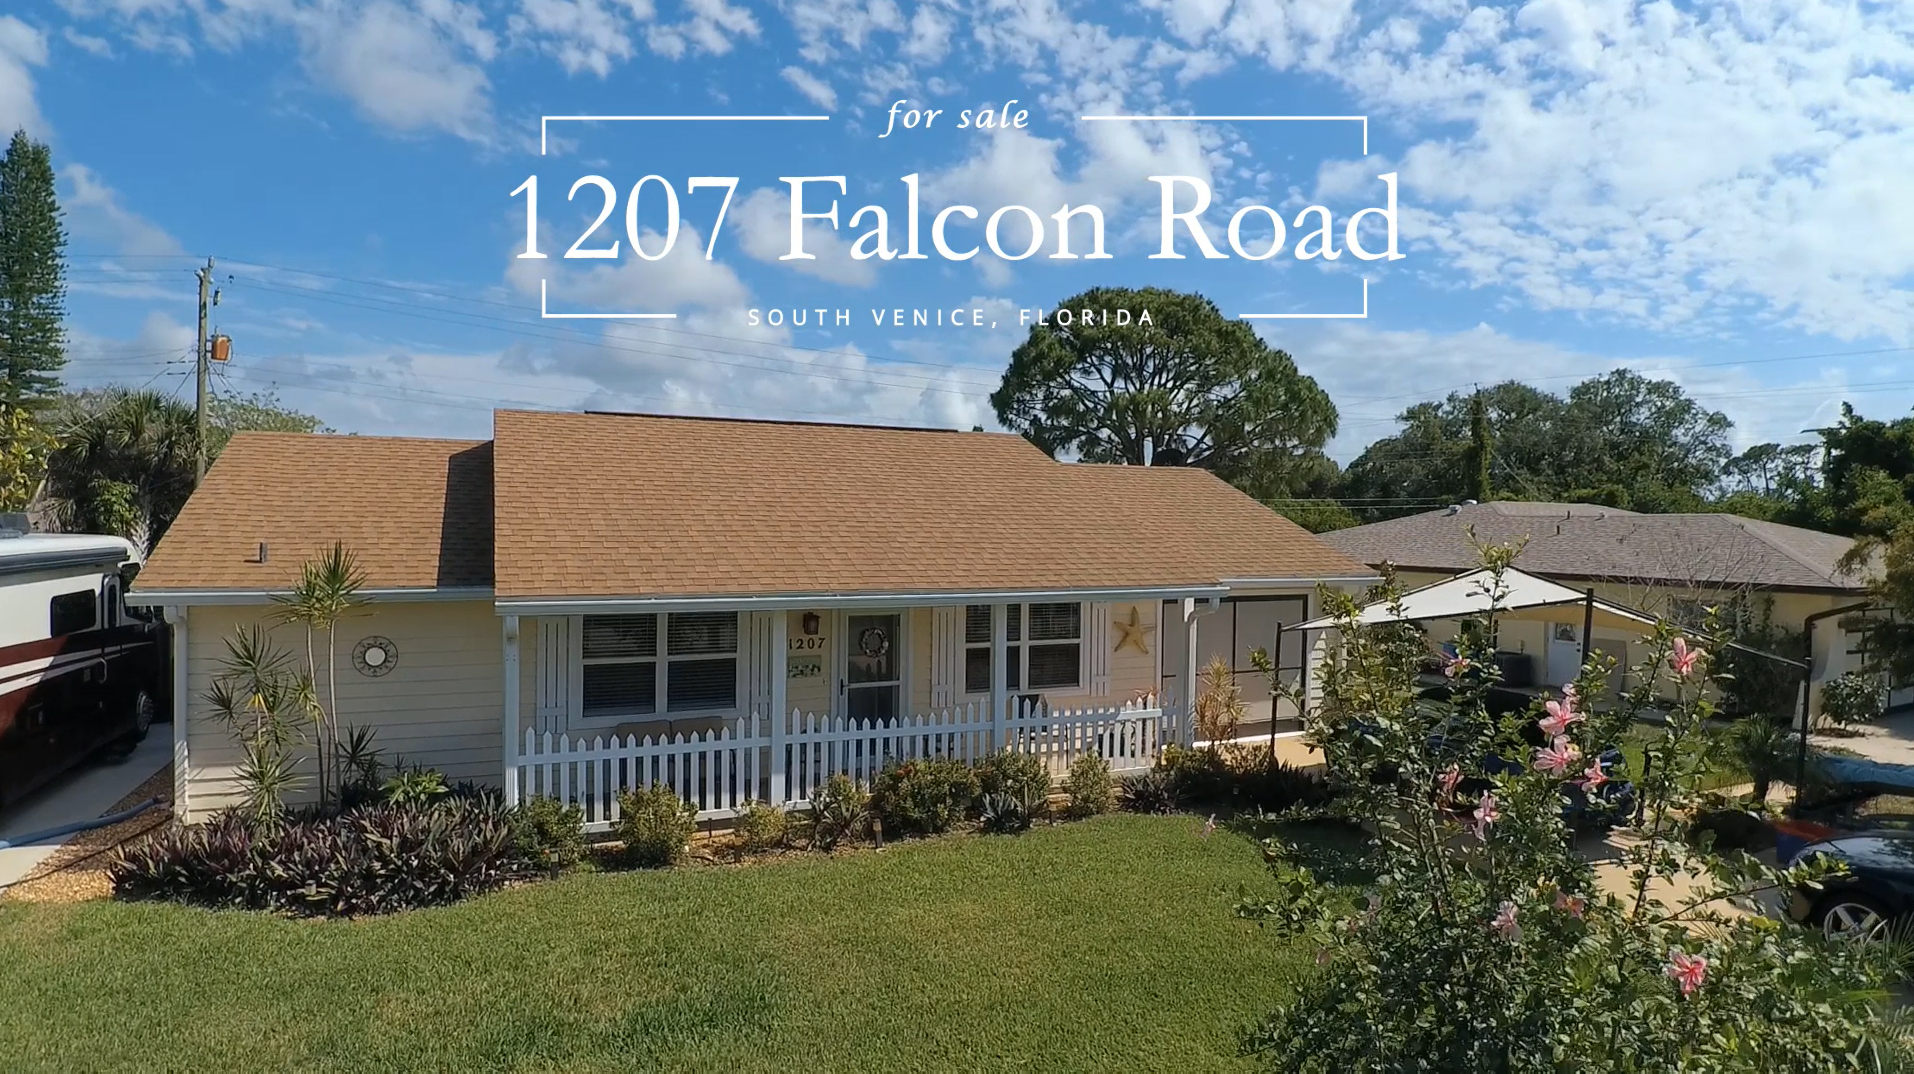 1207 Falcon Road view from street